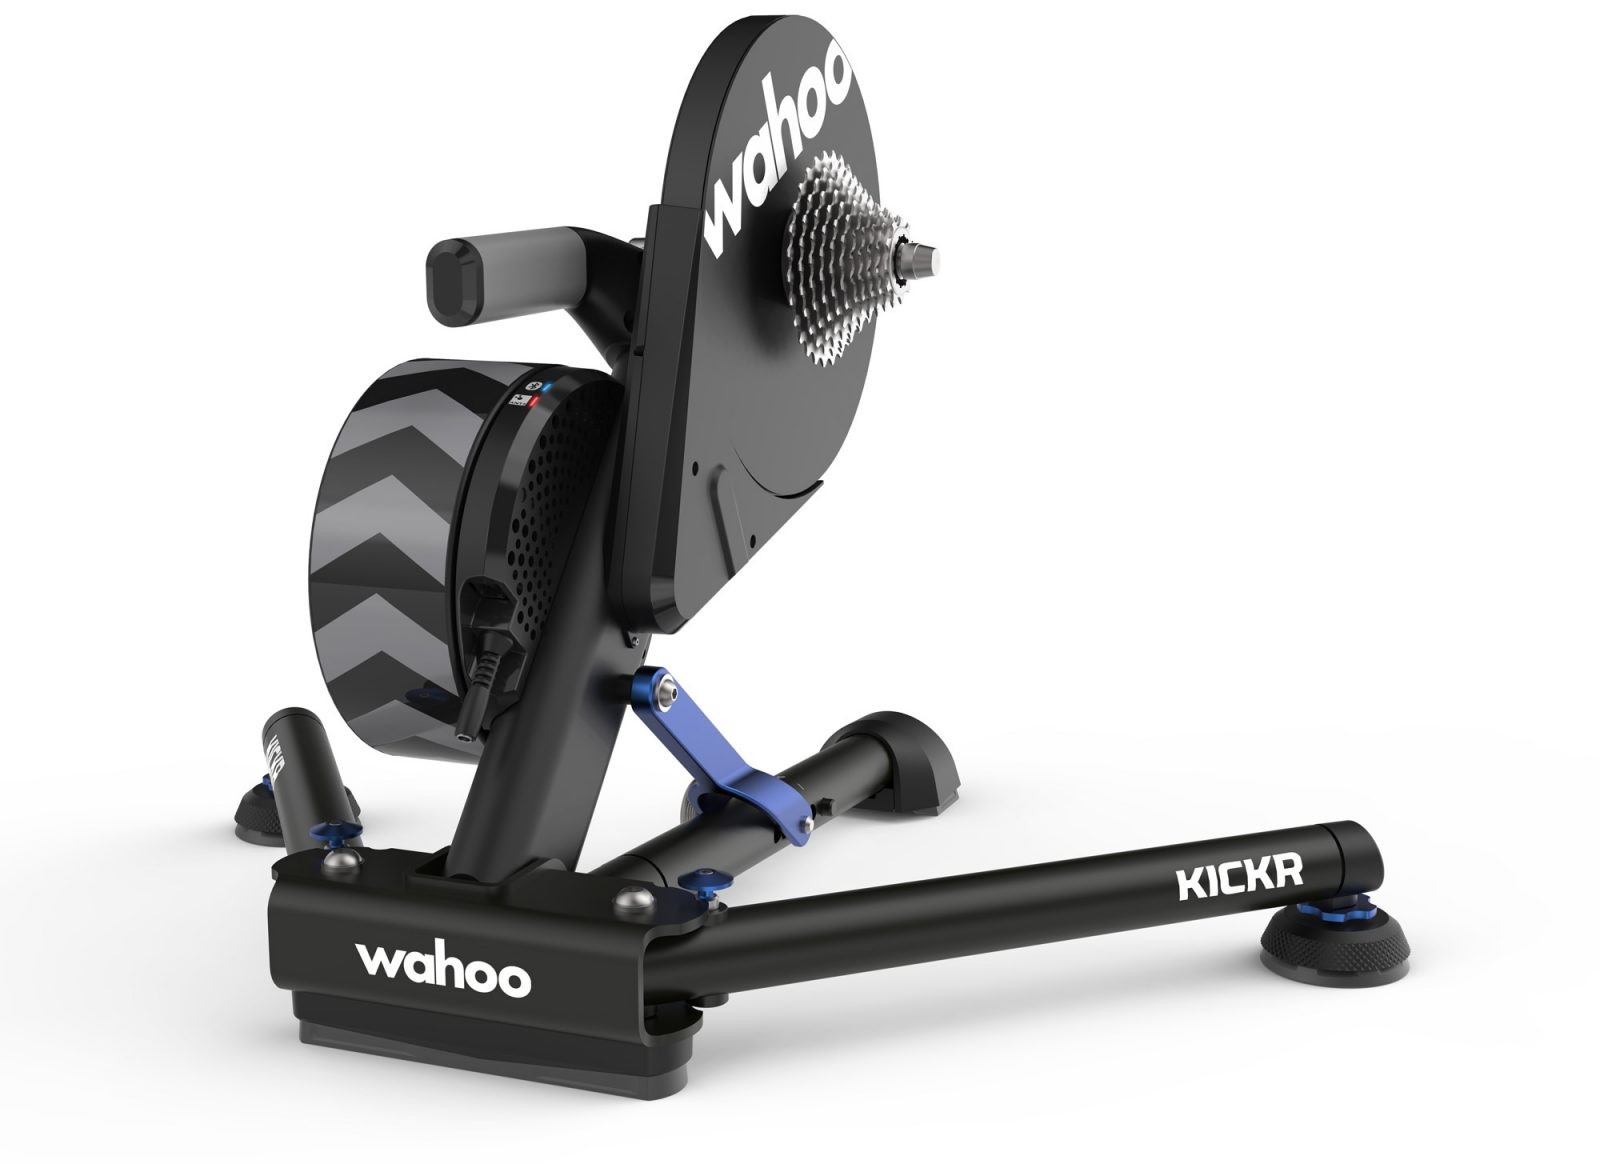 Wahoo KICKR Gen 5 (2020) Reviews and Specifications - Zwift Insider Smart Trainer Buyer's Guide